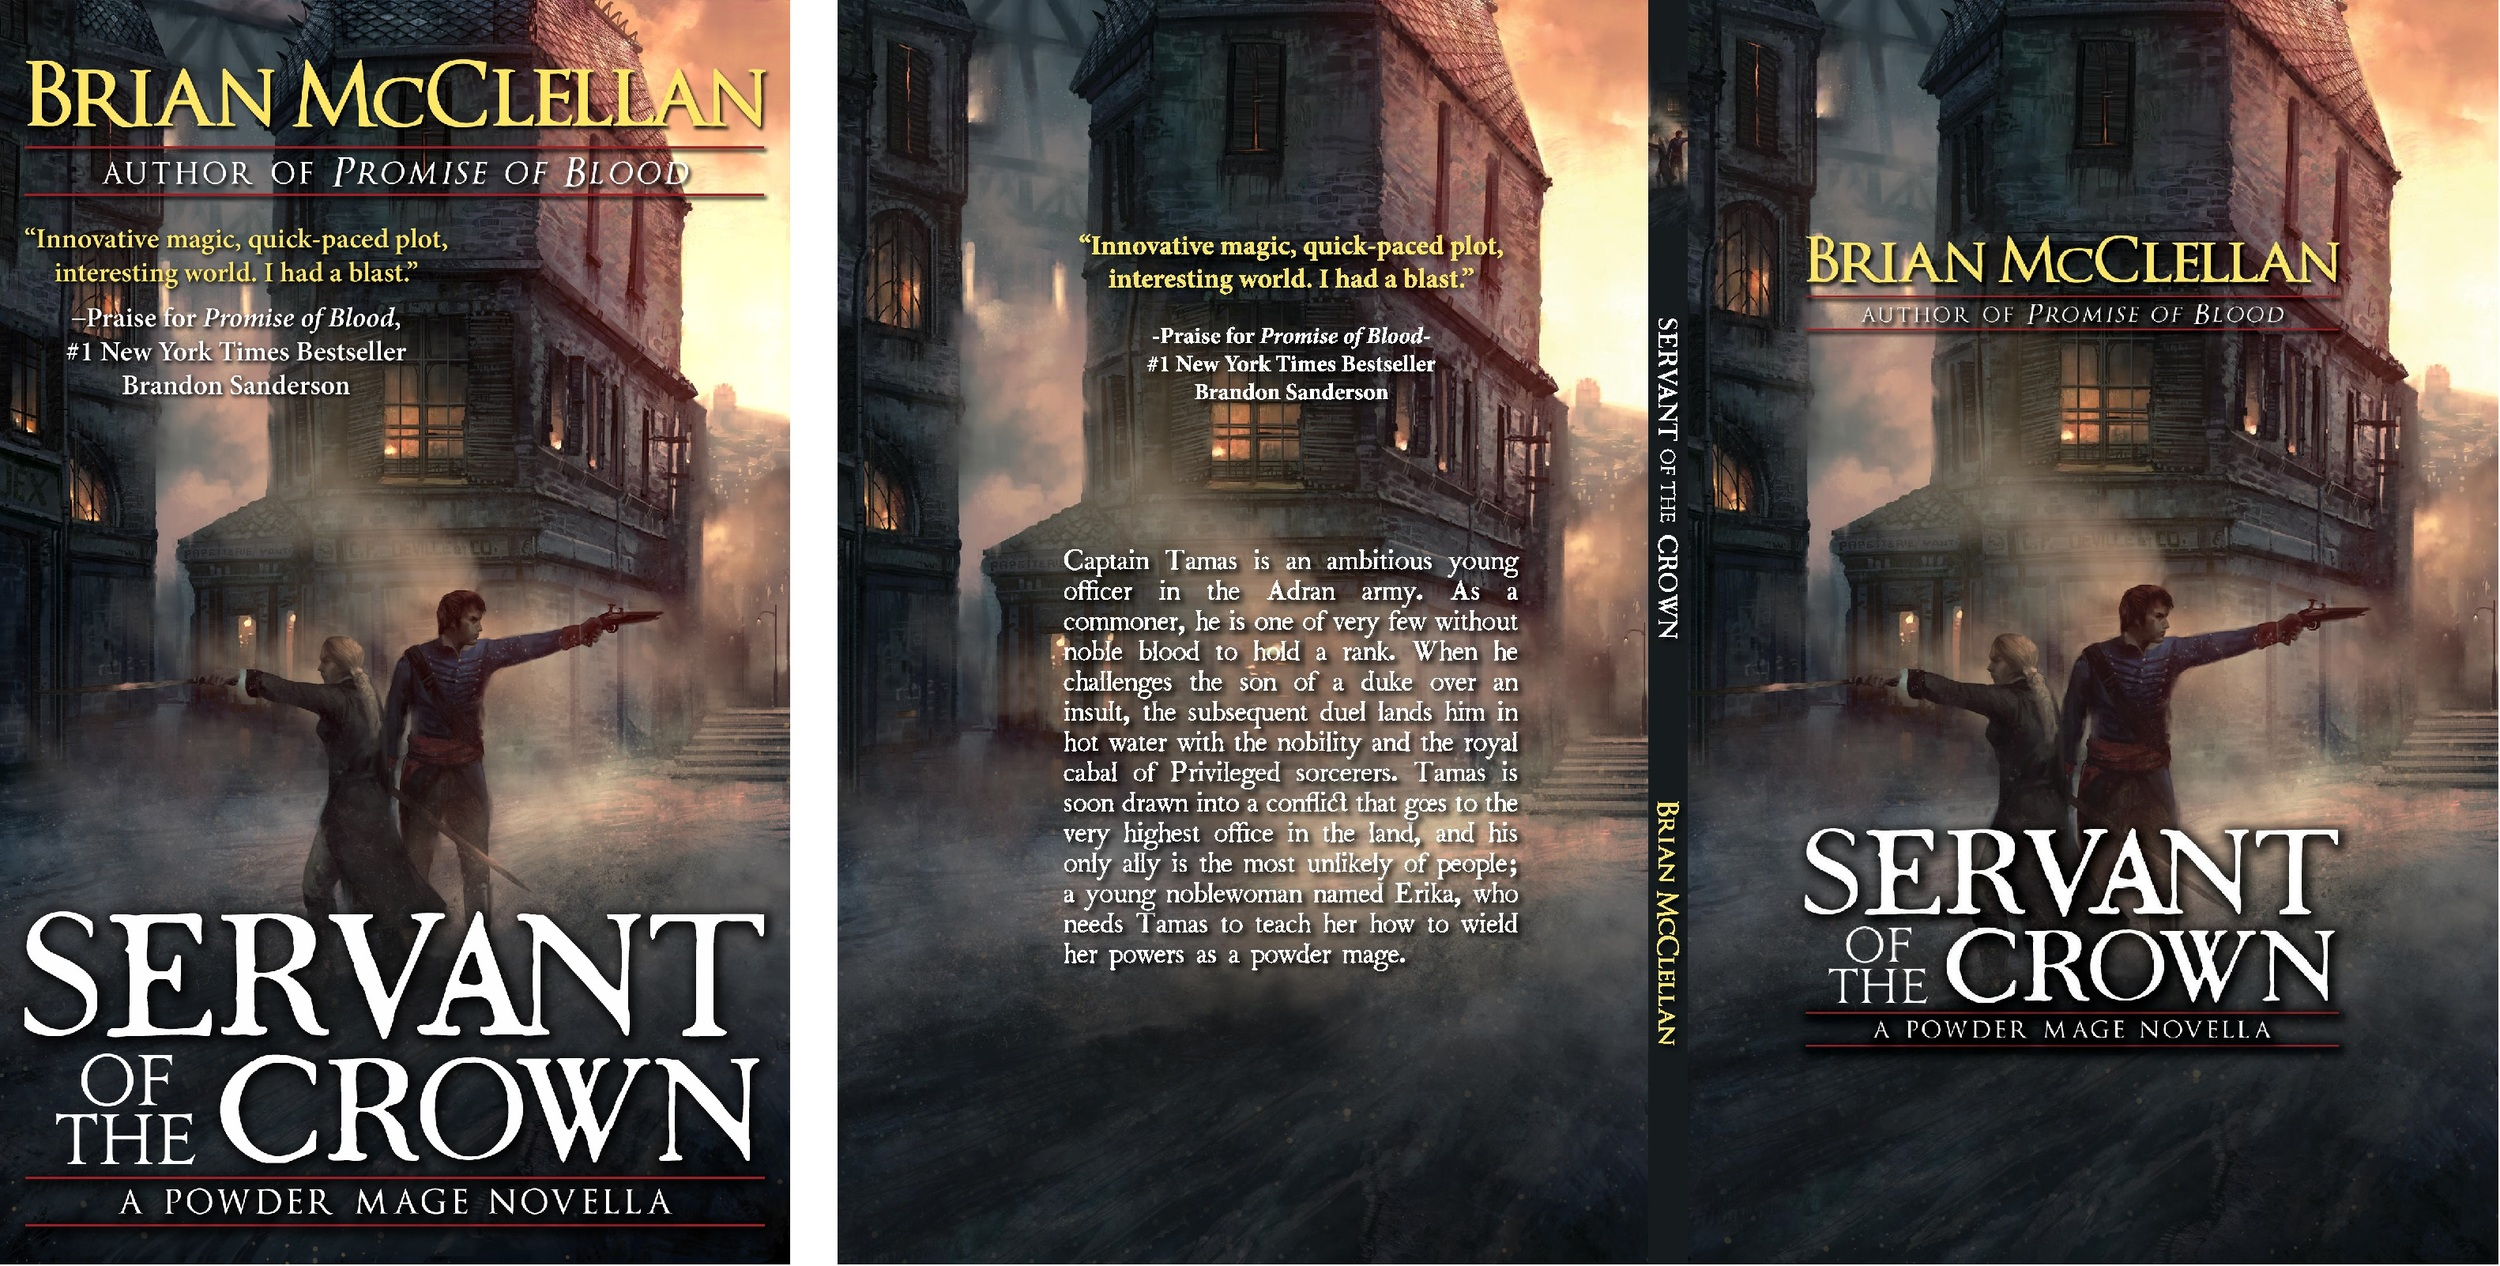 We had to turn the ebook cover on the left into a print cover on the right.